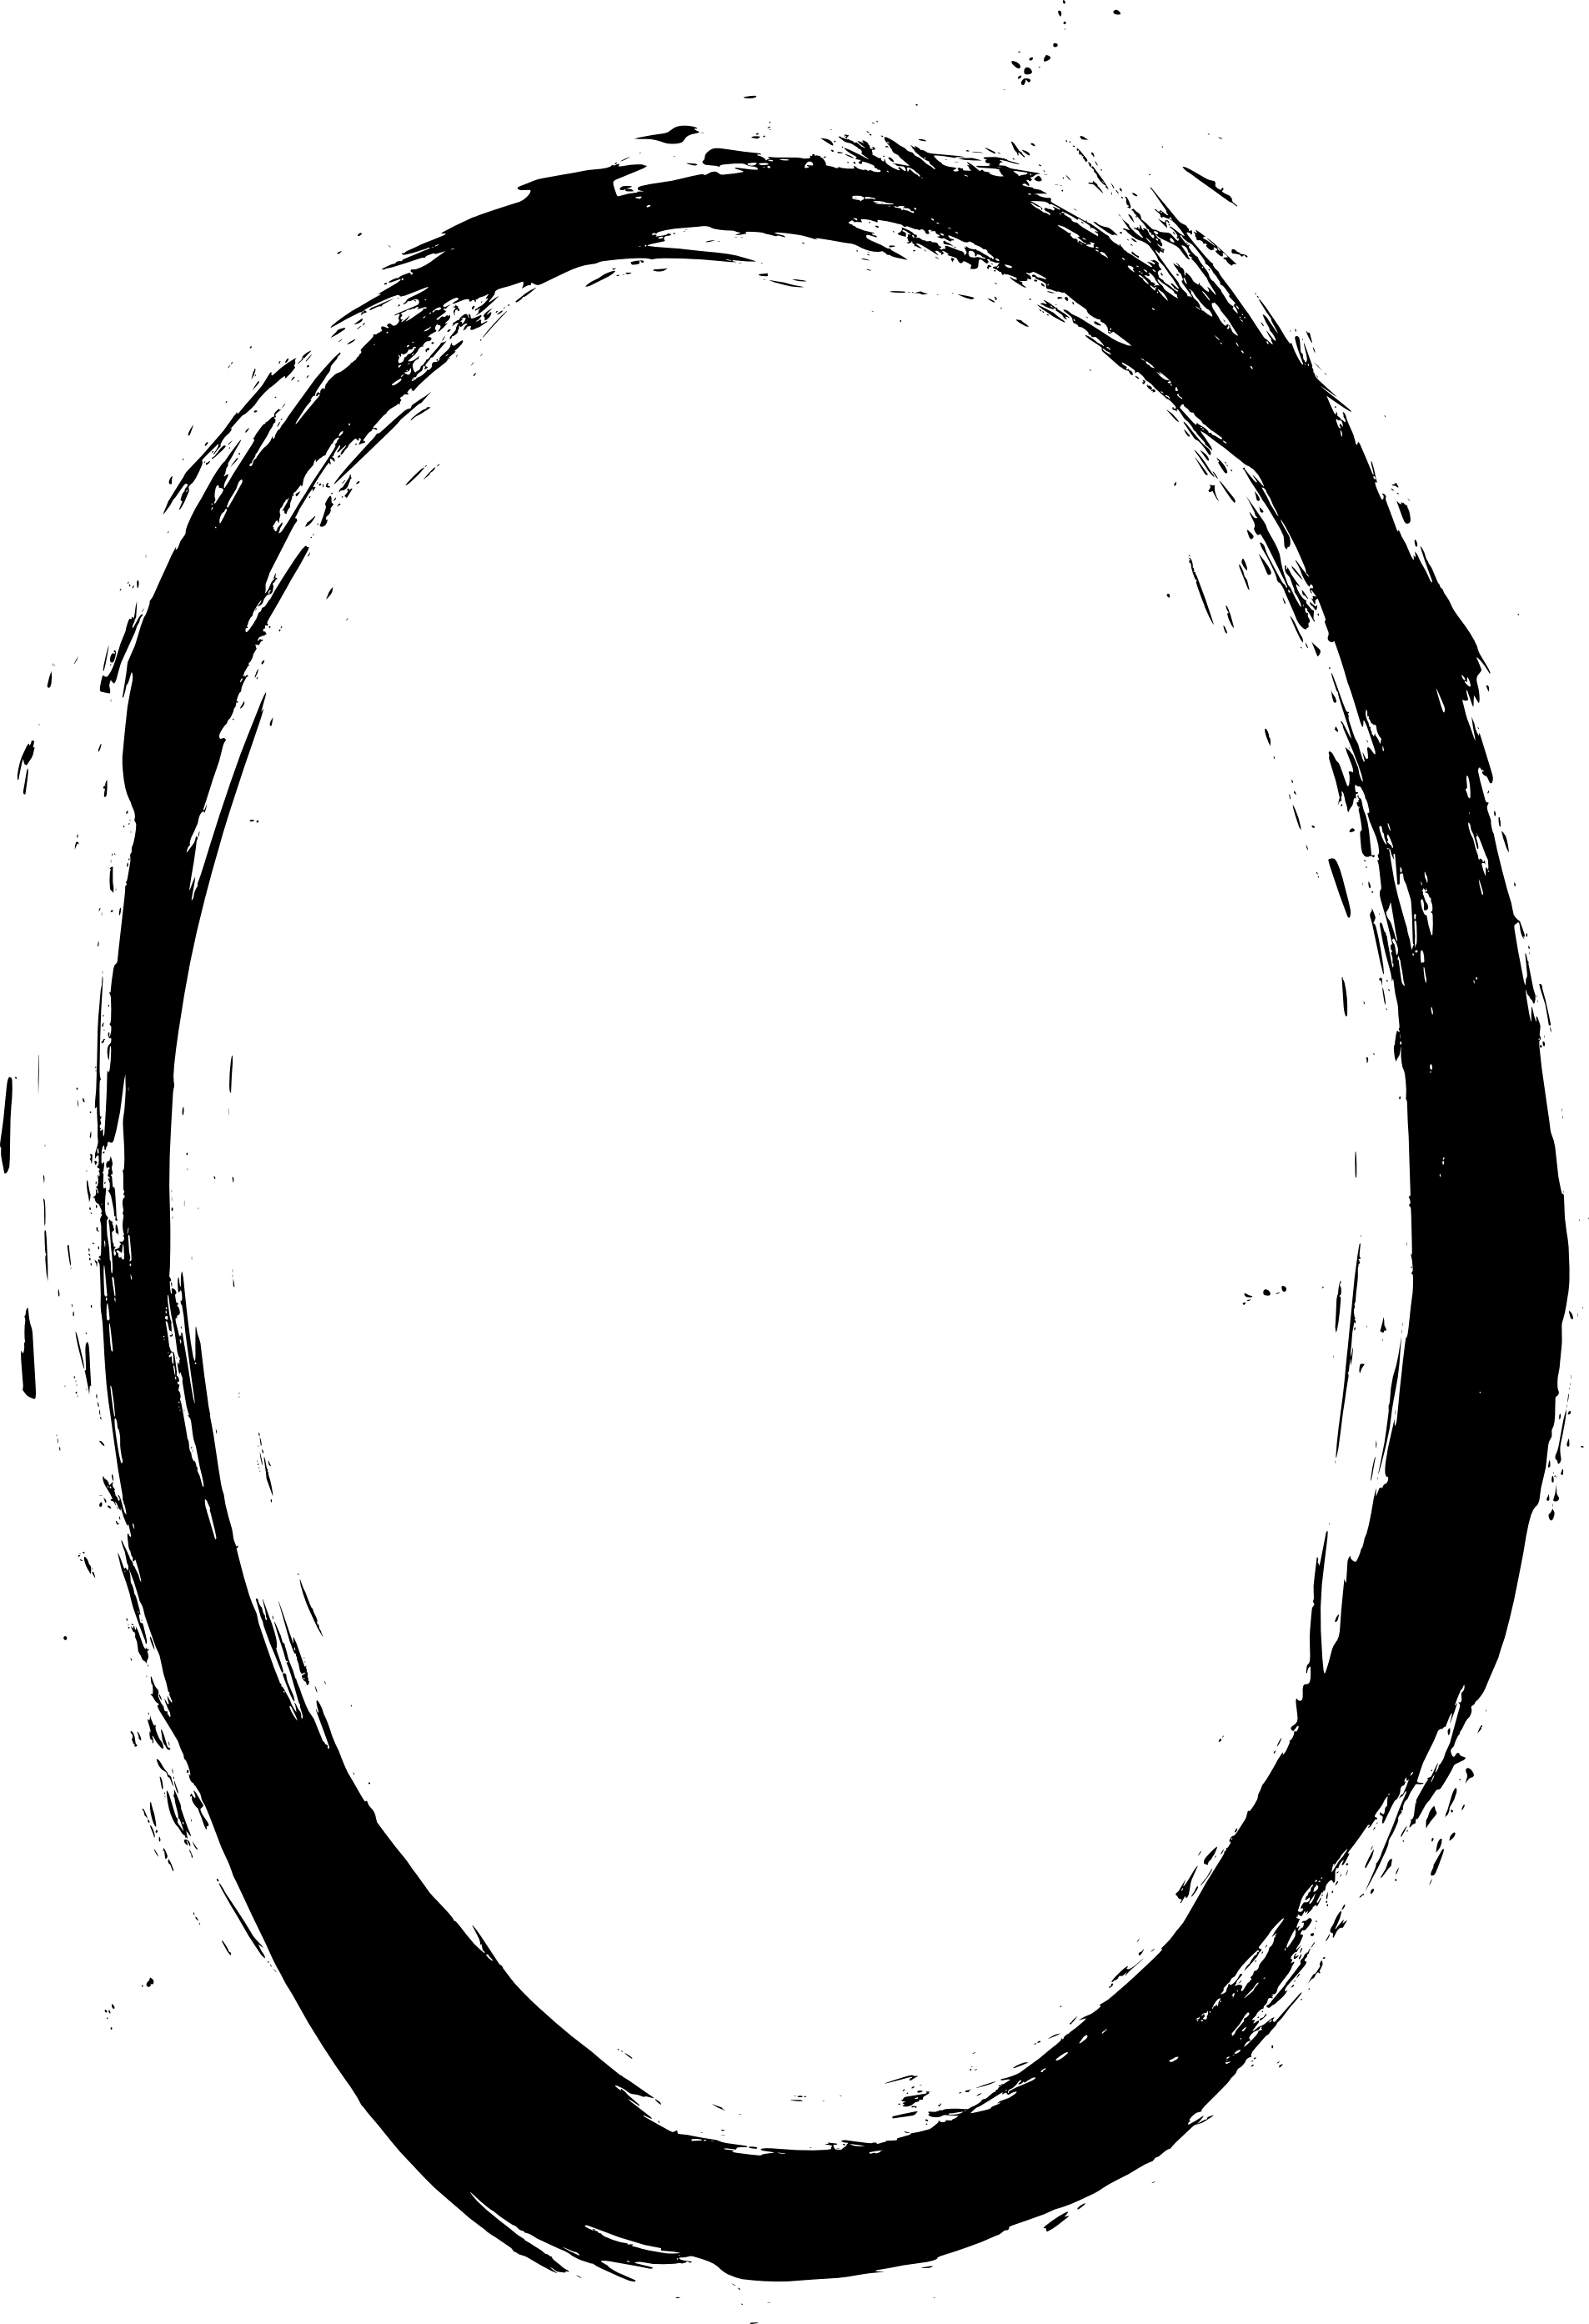 Chalk Transparent Border: 6 Grunge Oval Frame (PNG Transaprent)